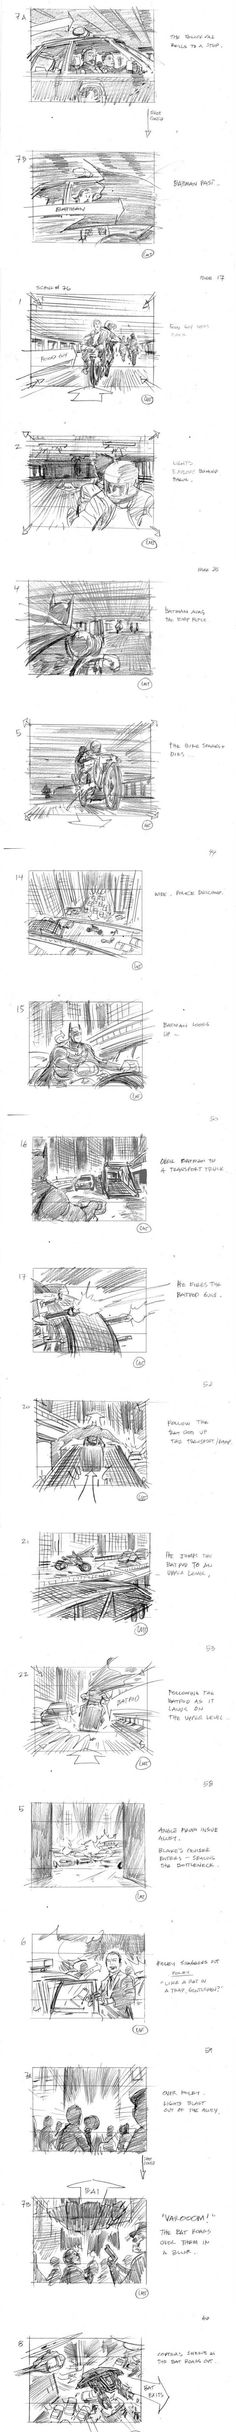 'The Dark Knight Rises'  Storyboard Artist: Gabriel Hardman